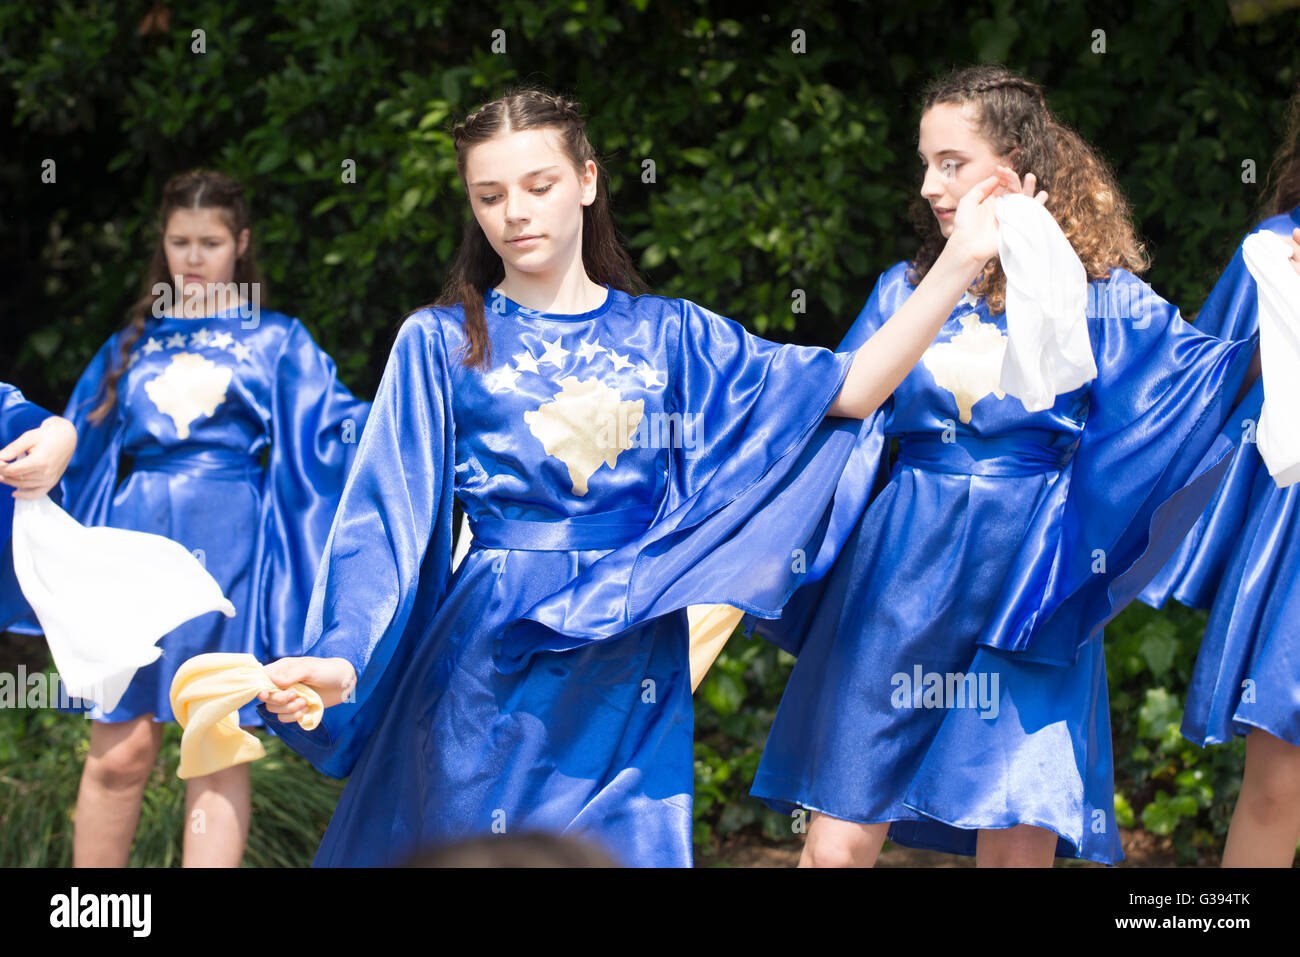 London Golders Green Childs Hill Park Albanian Community Childrens' Day Festival young teenagers blue dresses - Stock Image